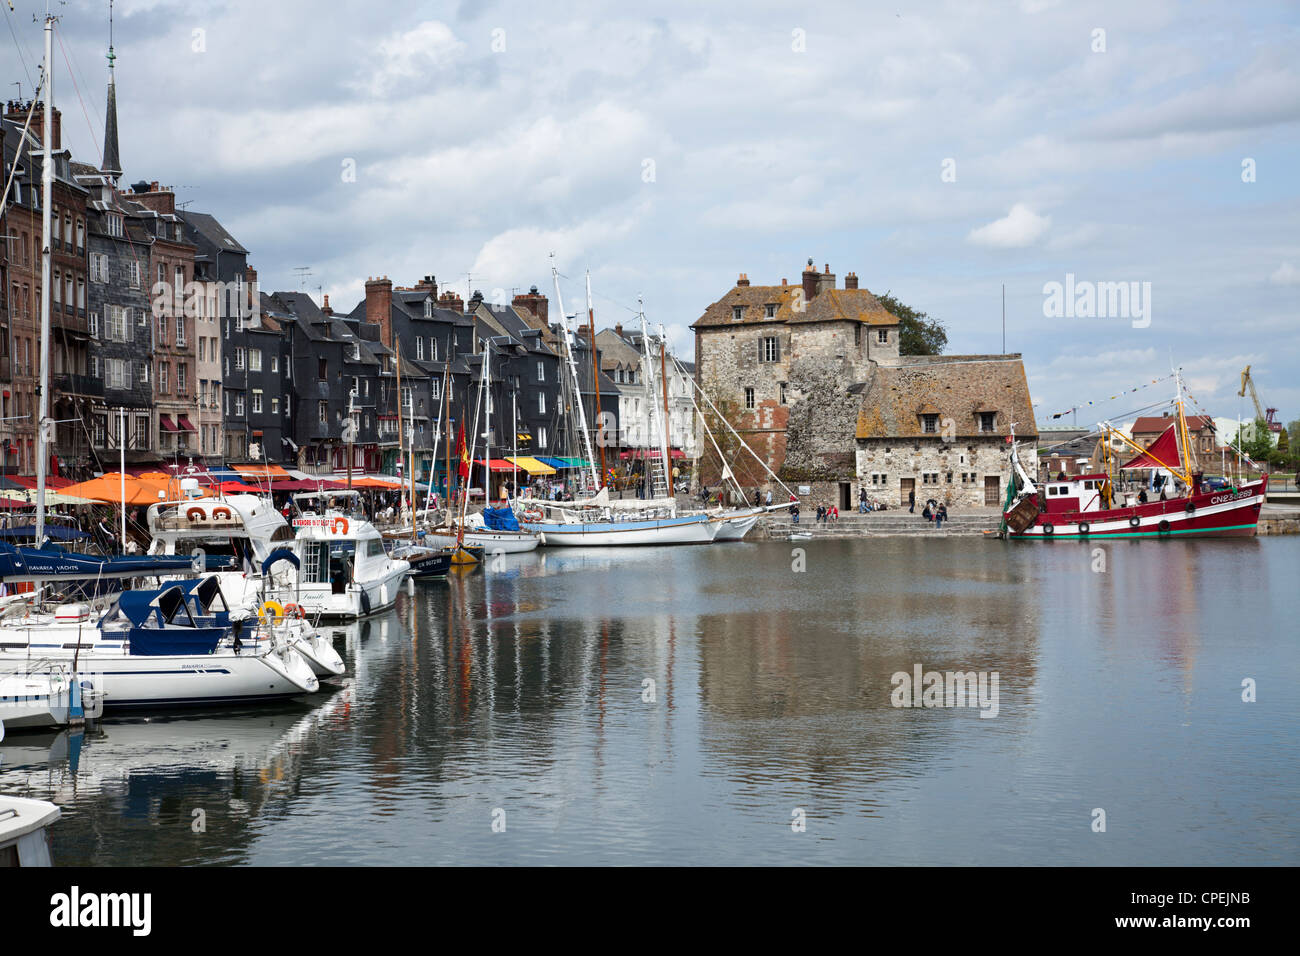 The Lieutenance at the Vieux Bassin (Old Dock), Honfeluer, Normandy, France Stock Photo